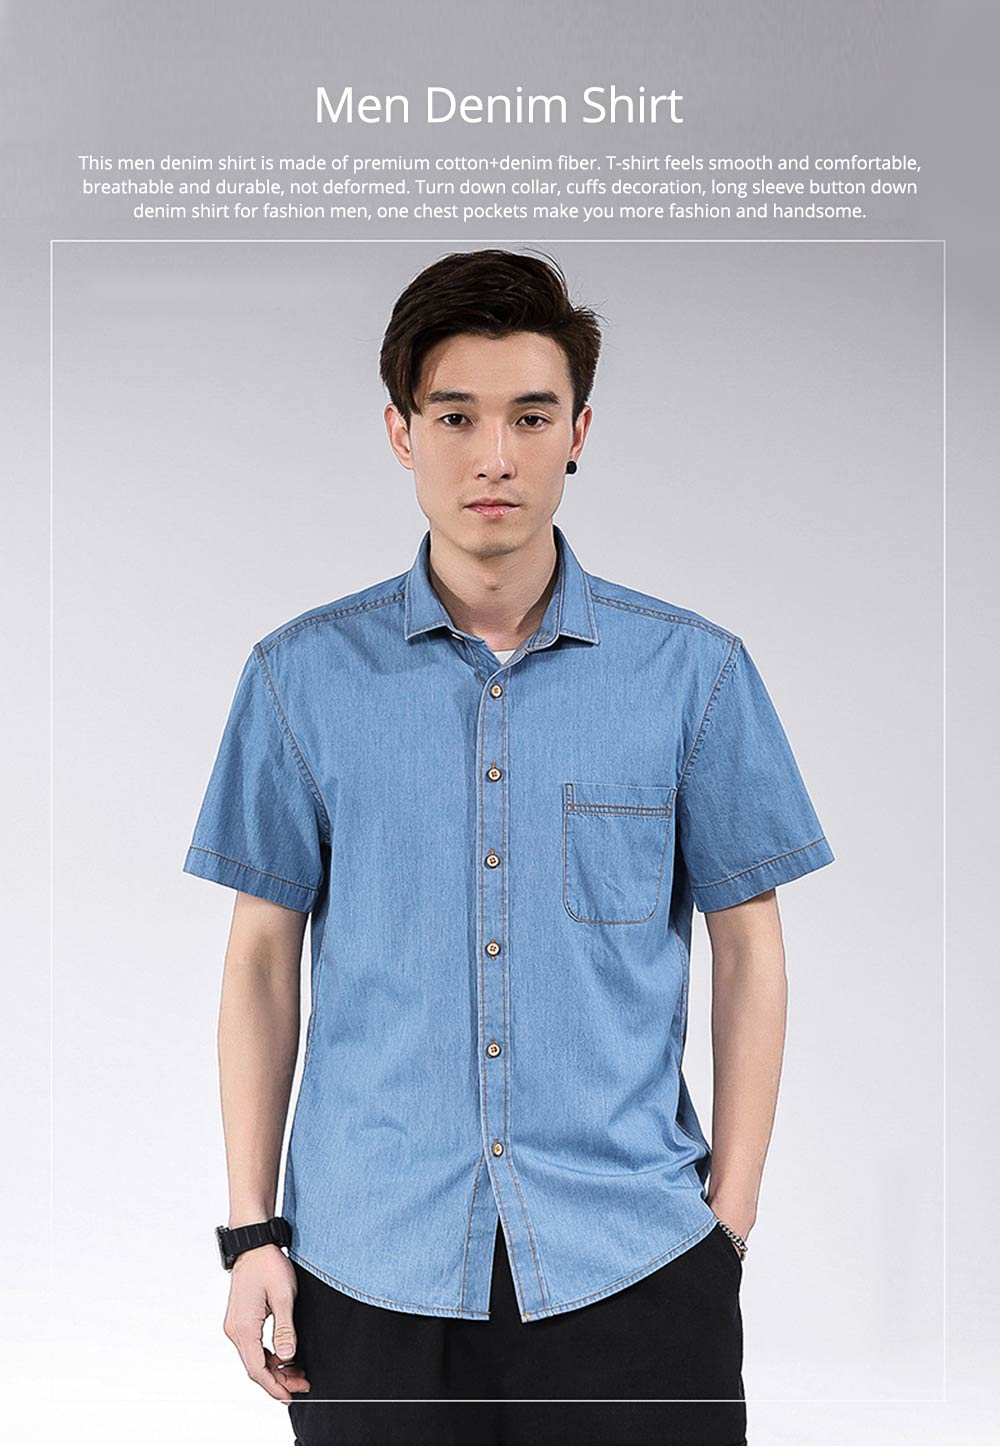 Men's Short Sleeve Shirts Casual Button Down Western Vintage Denim Shirt Cotton Loose Shirts 0